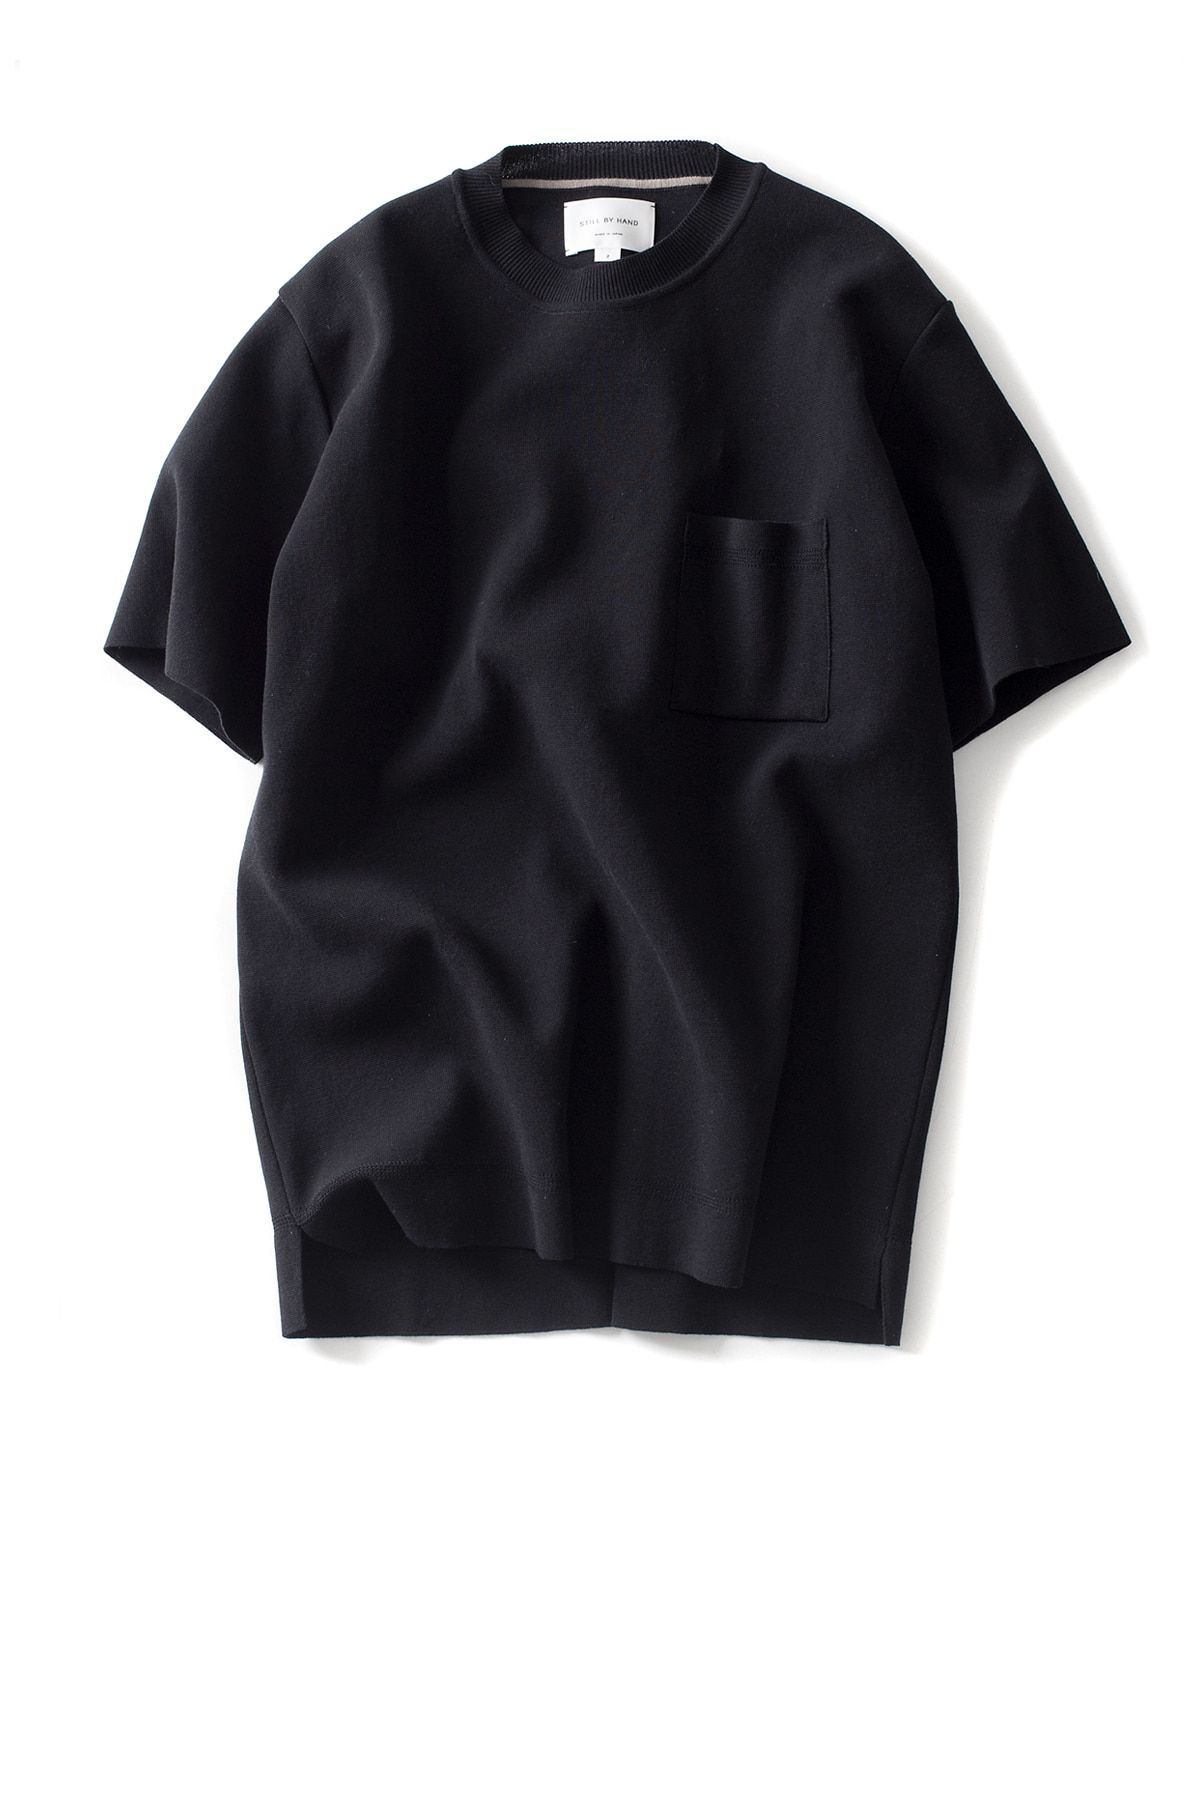 Still by Hand : Milano Rib T-Shirt (Black)